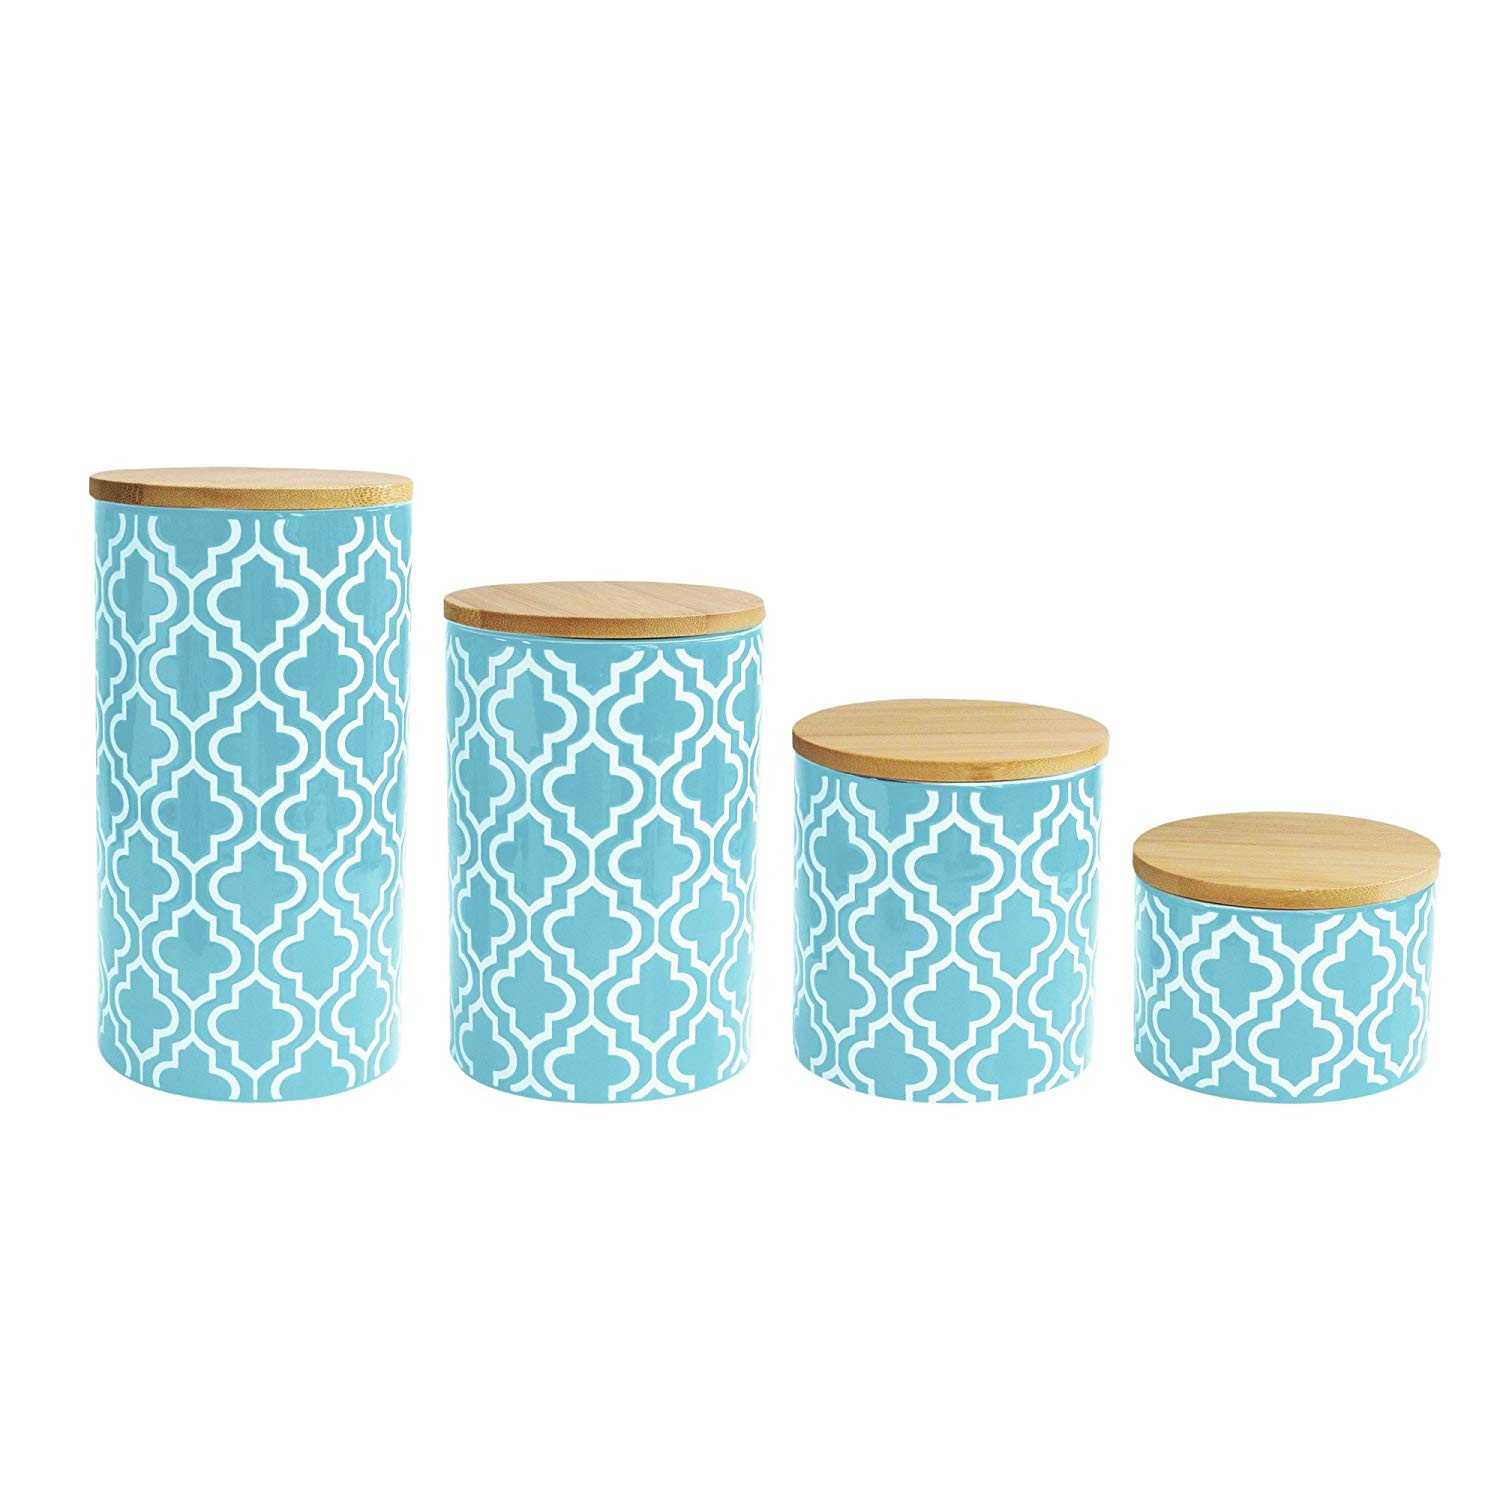 "American Atelier 5523-CANTLRB Quatrefoil Canister Set, 17"" x 4.2"" x 8"", Green"